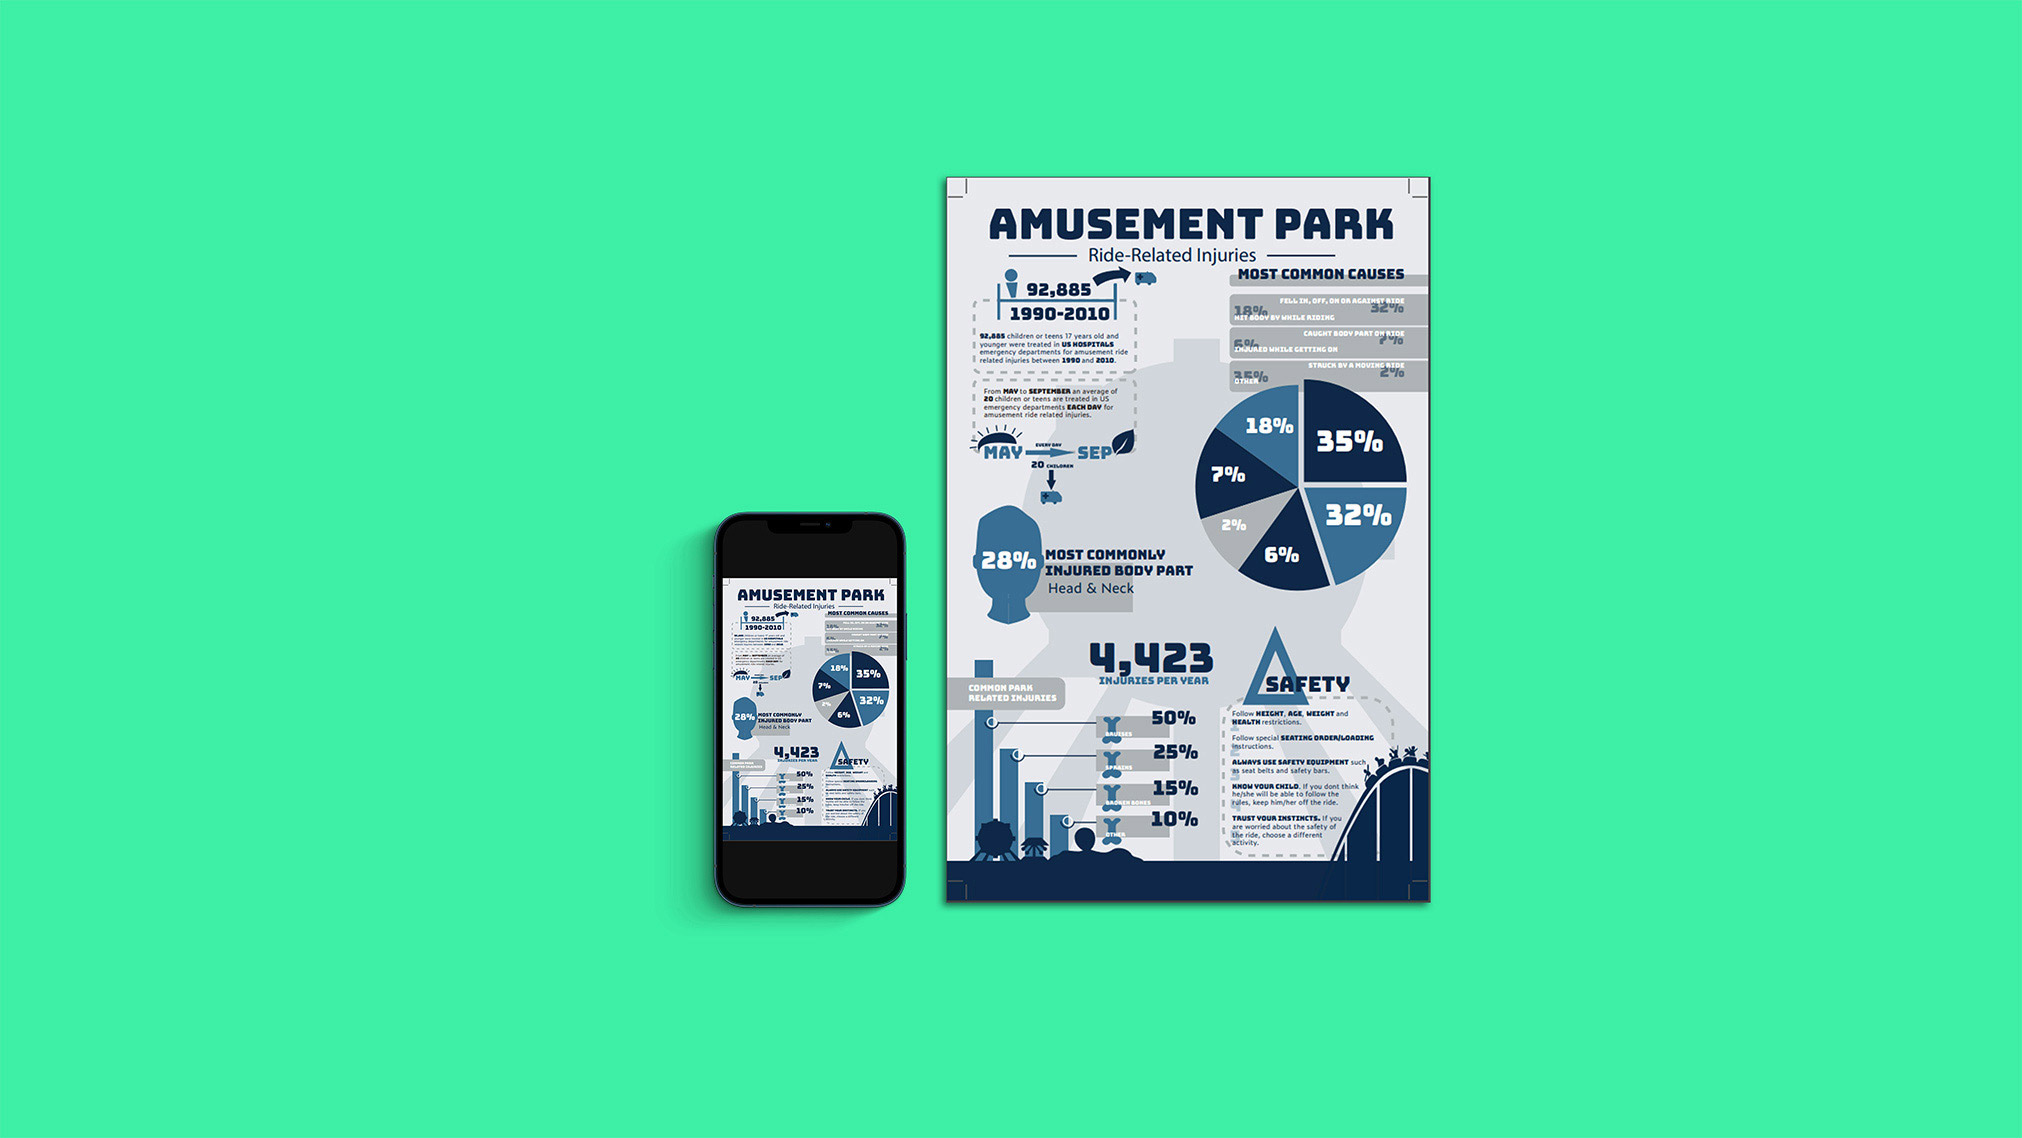 This was a graphic design project where I had to create an infographic on a random subject given to me which happened to be amusement park ride related injuries.